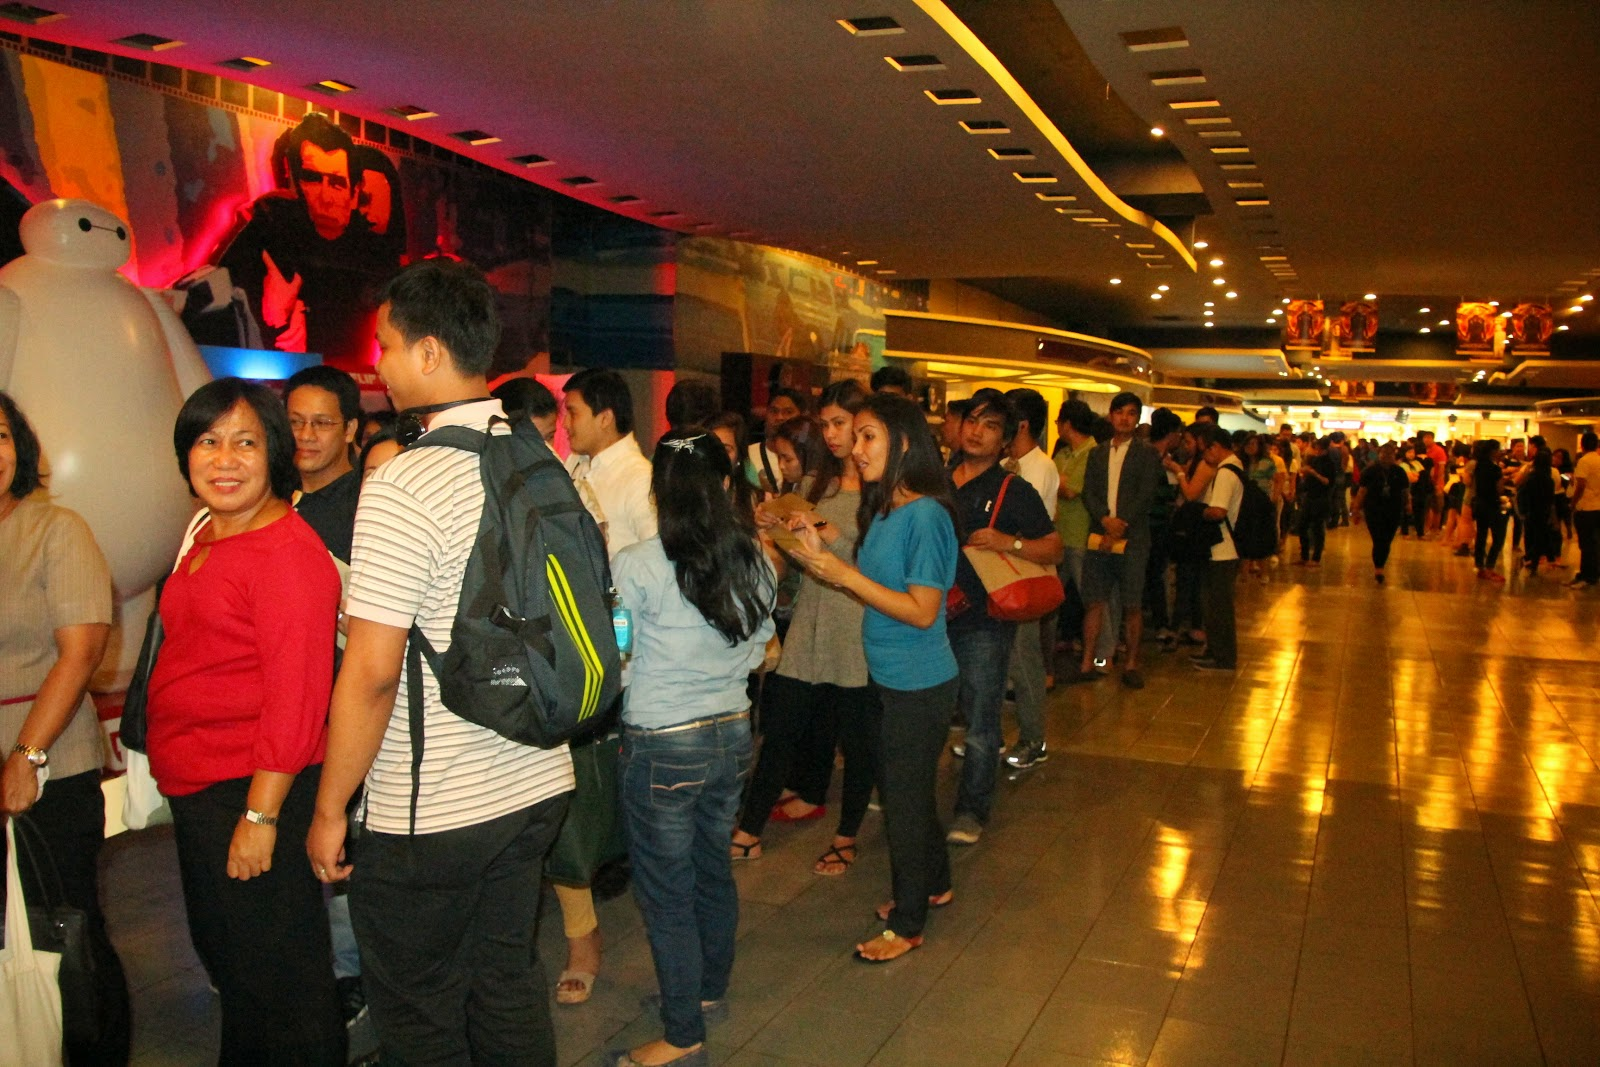 mockingjay block screening golden ticket megamall